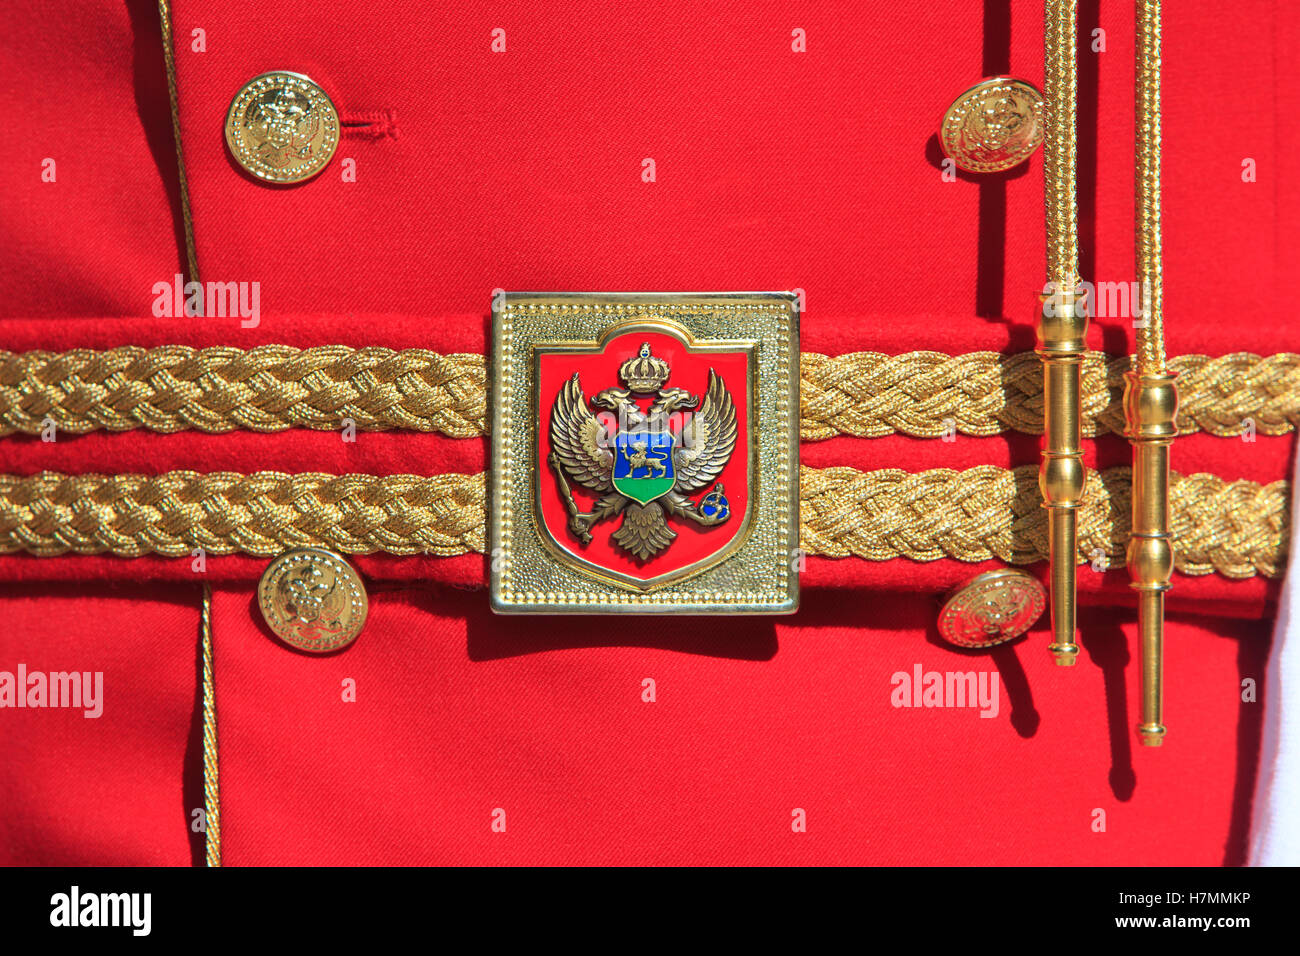 Detail of an officer's belt buckle of the Montenegrin presidential guard in Cetinje, Montenegro Stock Photo